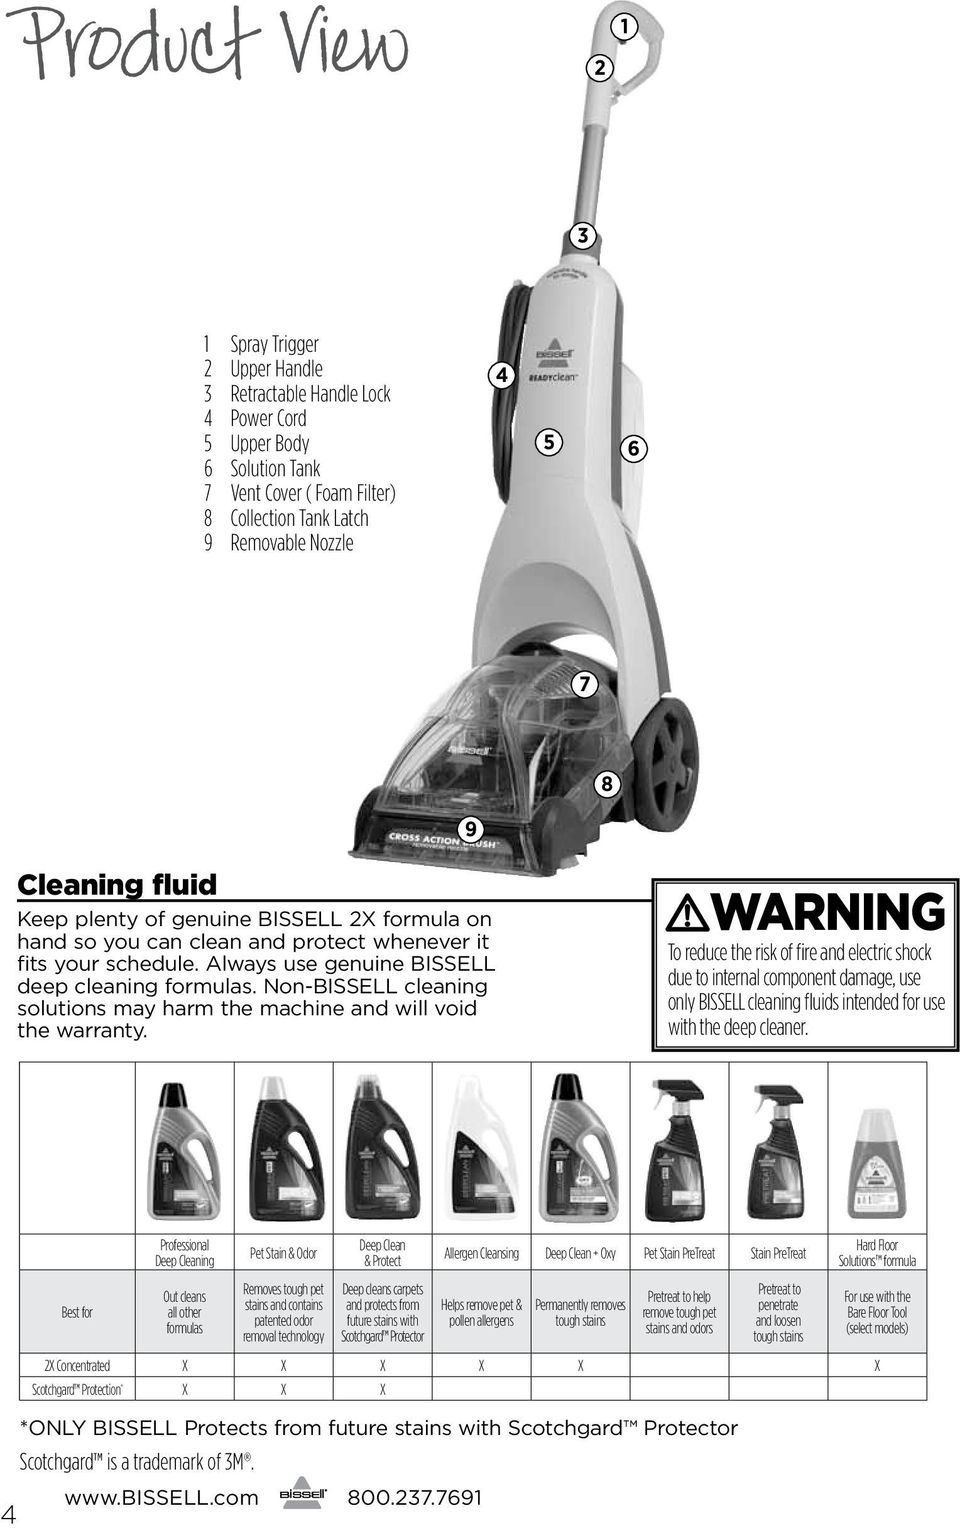 Non-BISSELL cleaning solutions may harm the machine and will void the warranty.